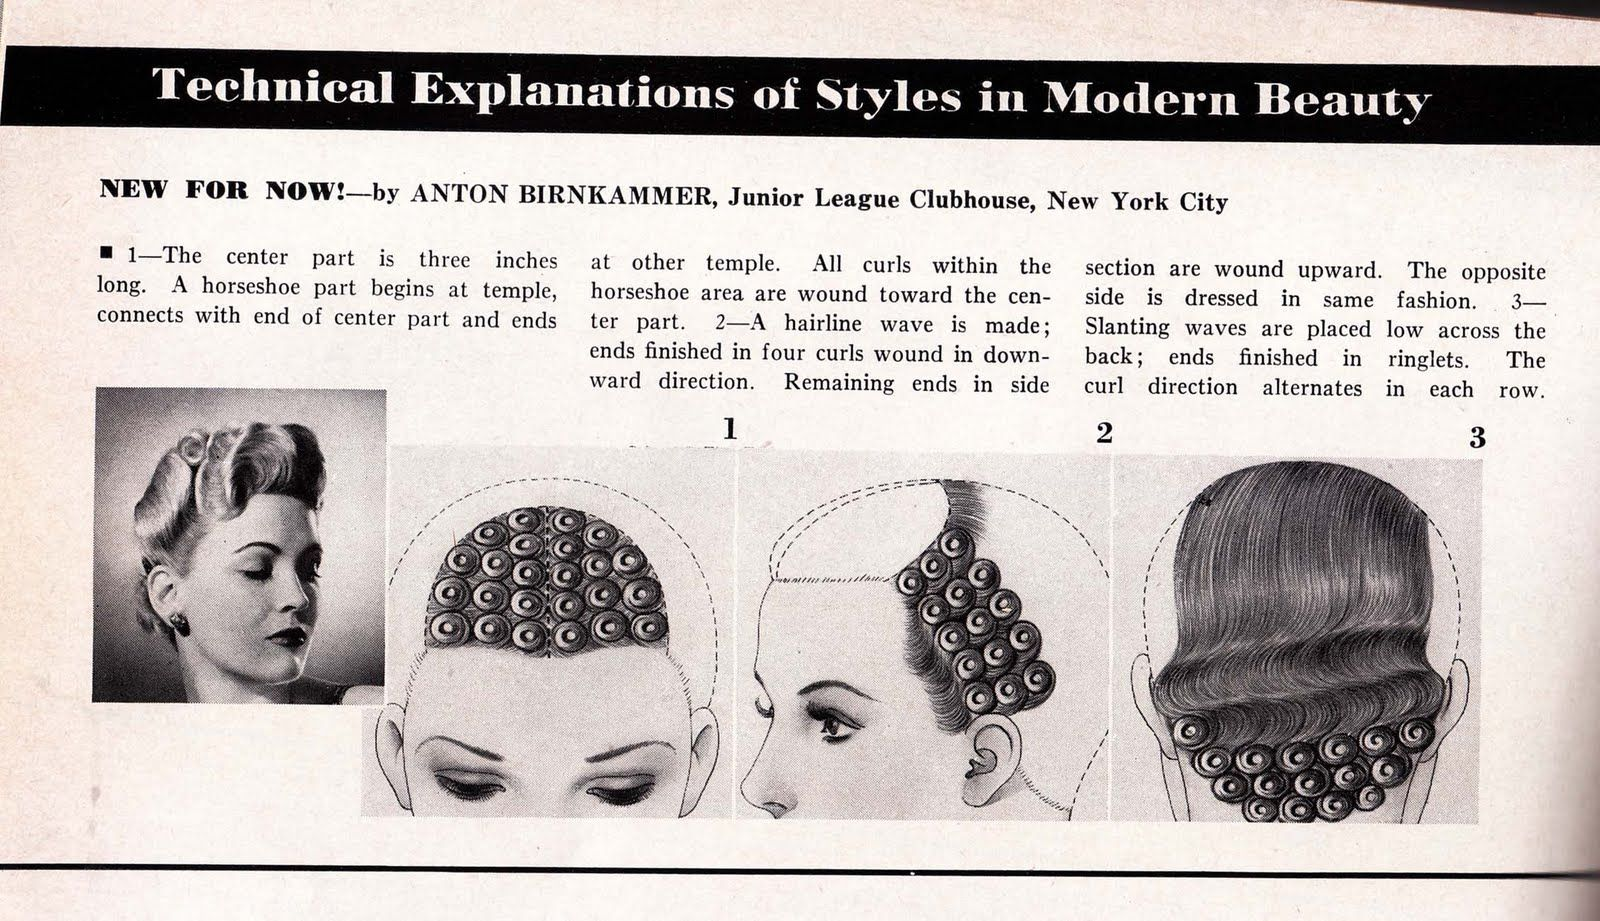 pin curl diagram volkswagen wiring image result for long hair hairstyles